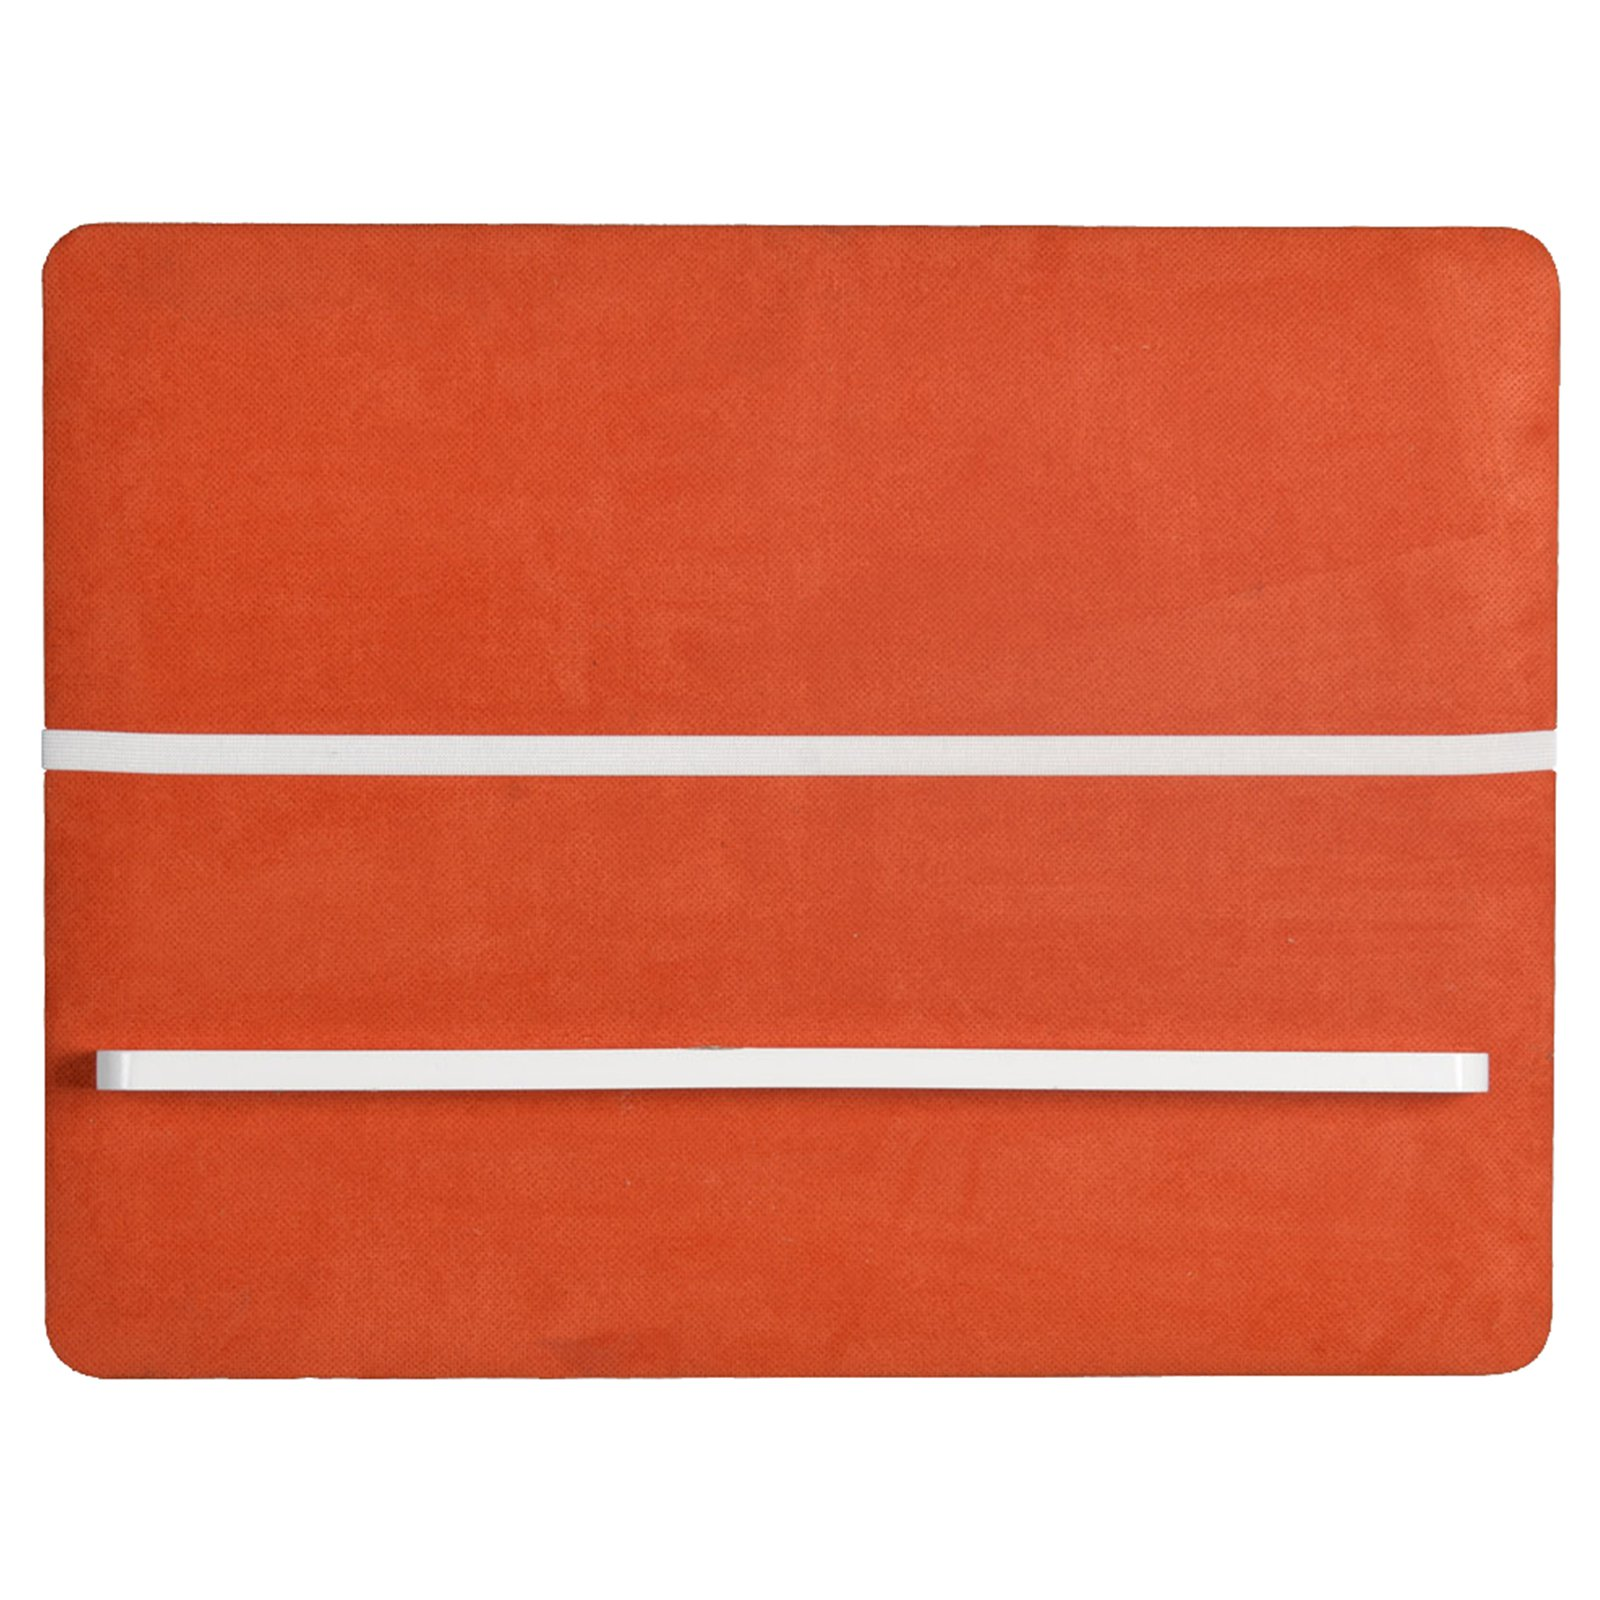 Sagebrook Home Fabric Memo Board